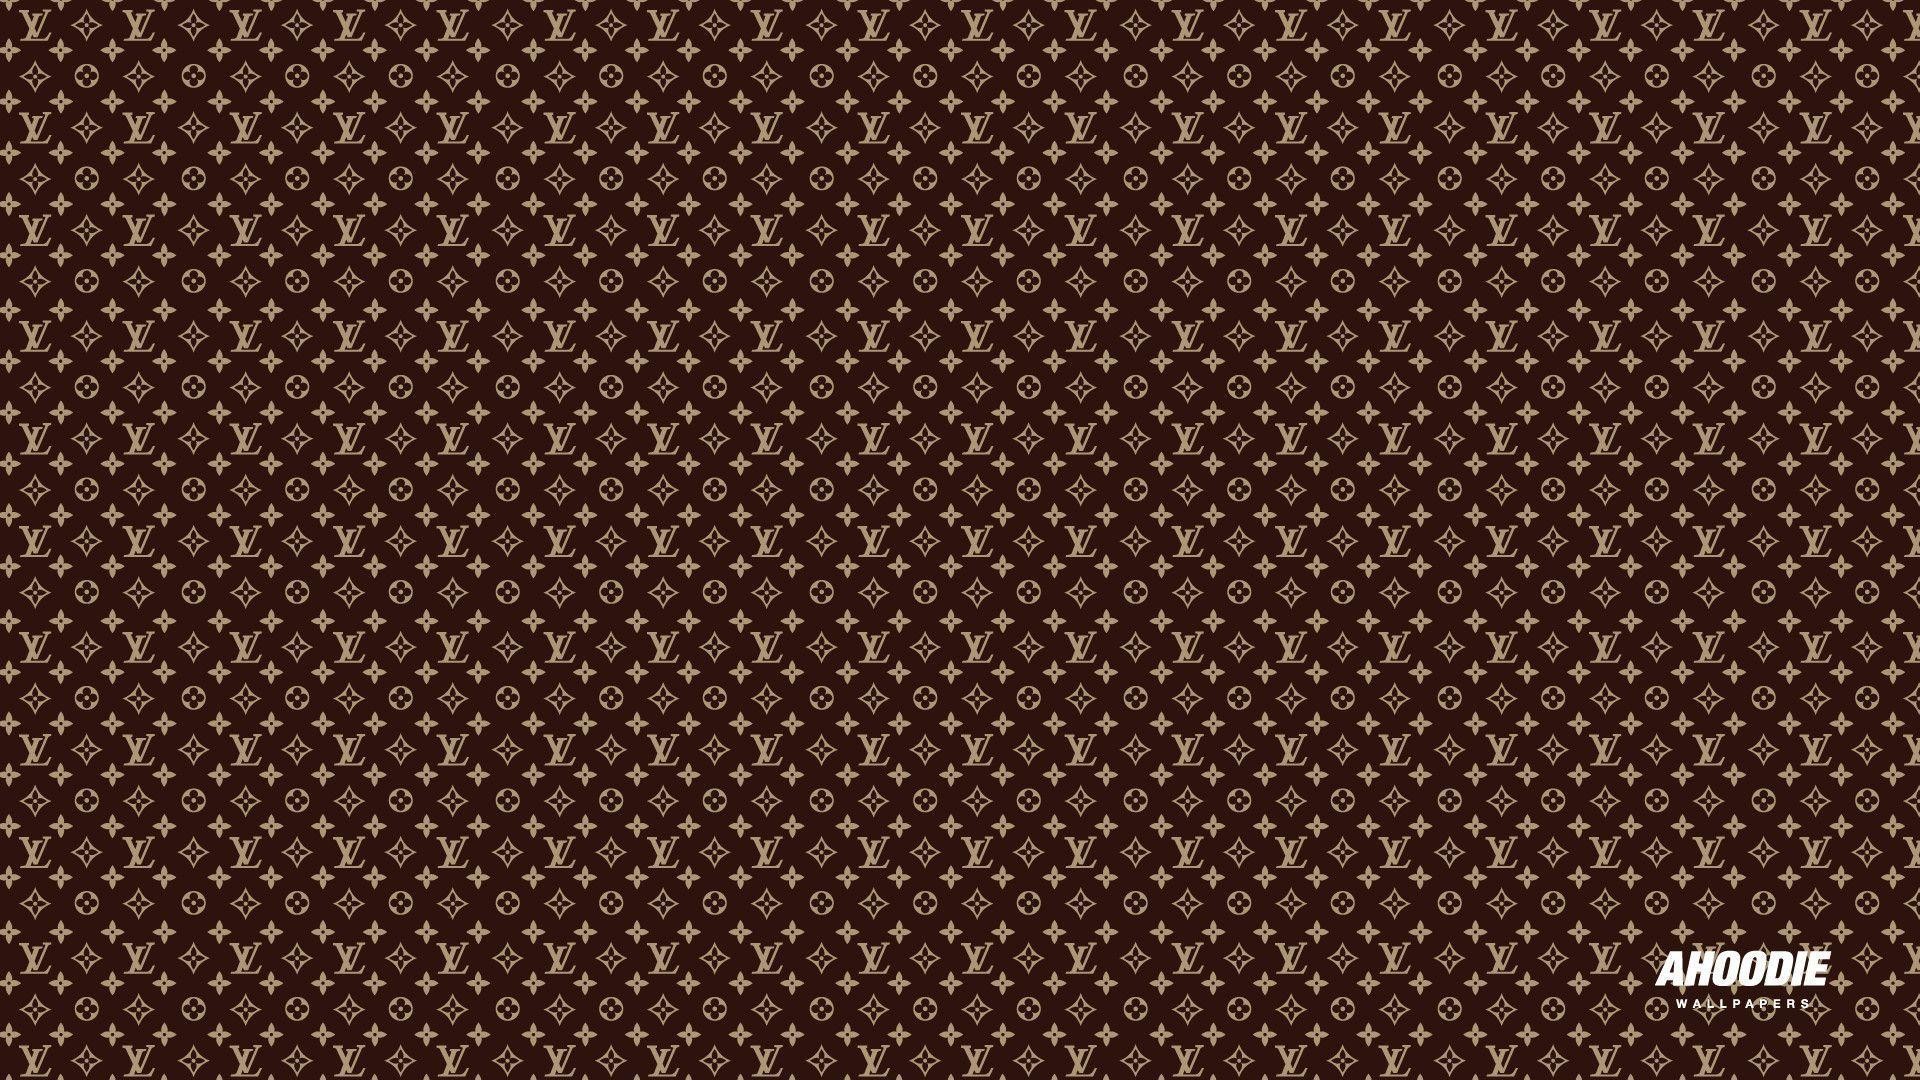 and louis vuitton pattern - photo #12